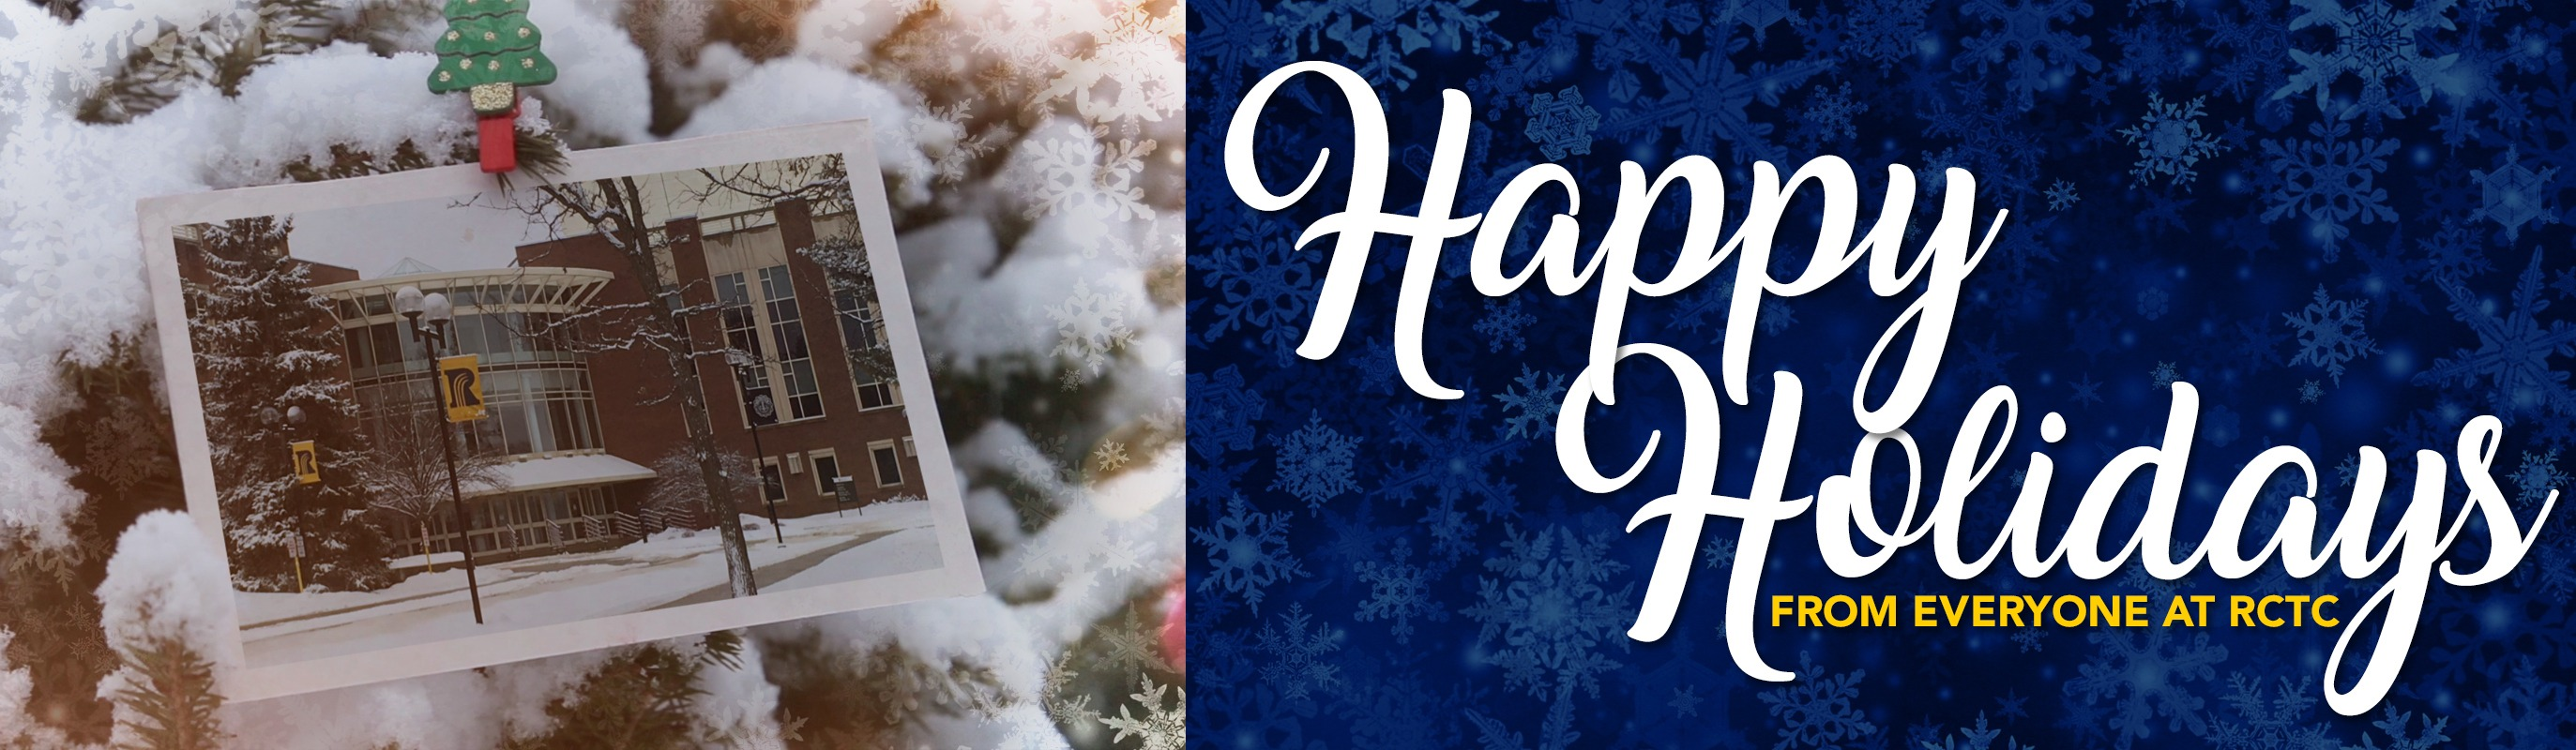 Happy Holidays from RCTC